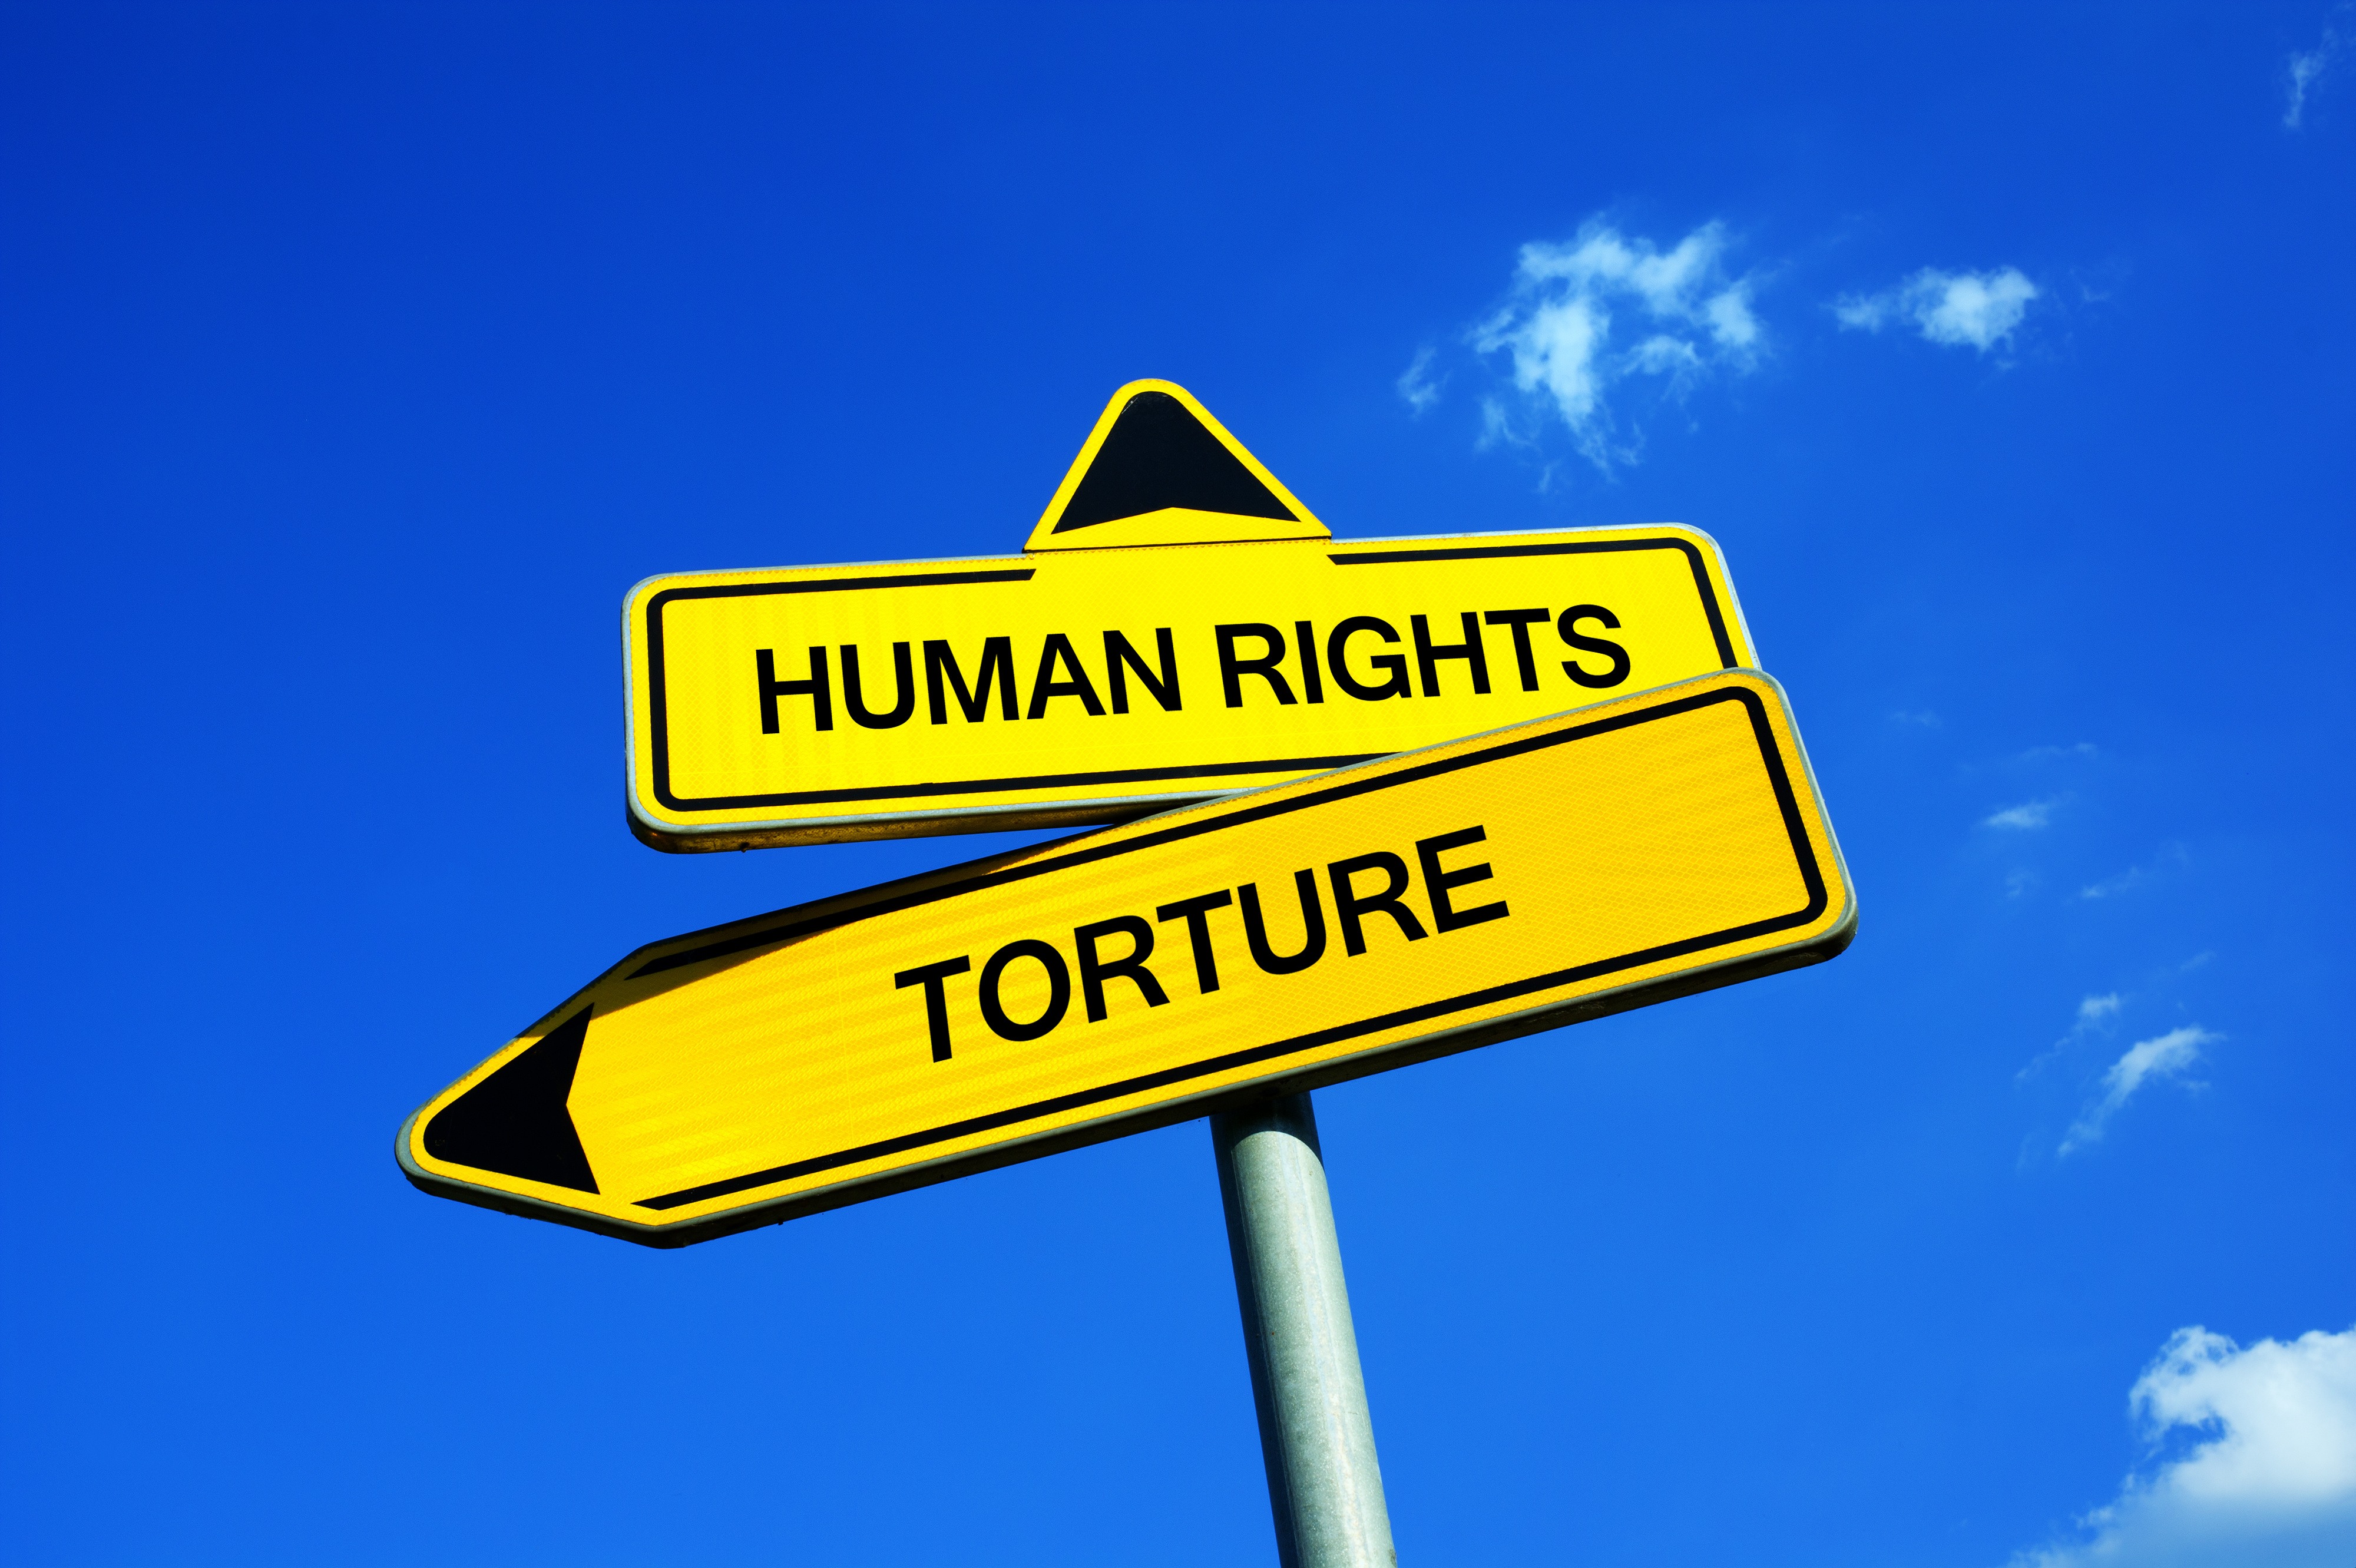 Human Rights or Torture